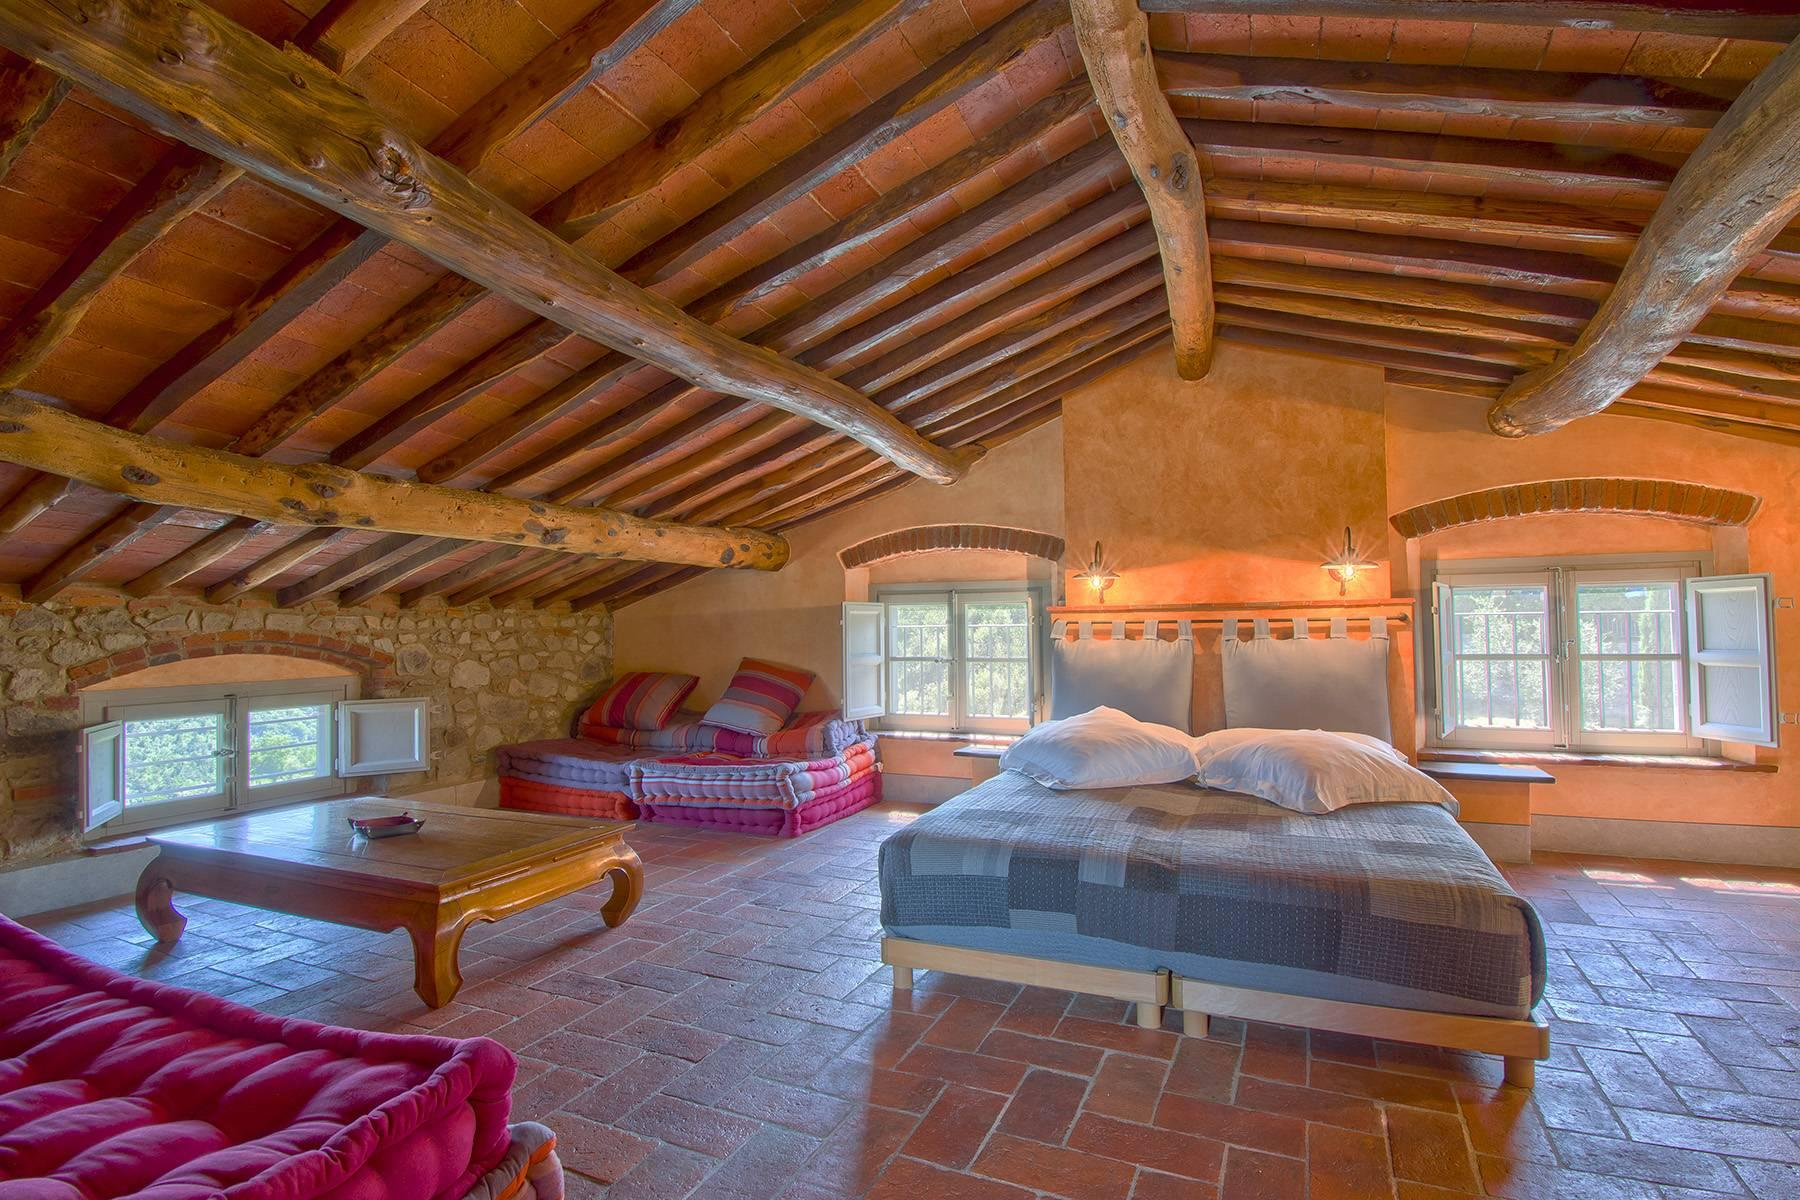 Stunning Country villa on the hills of Lucca with vineyard - 9